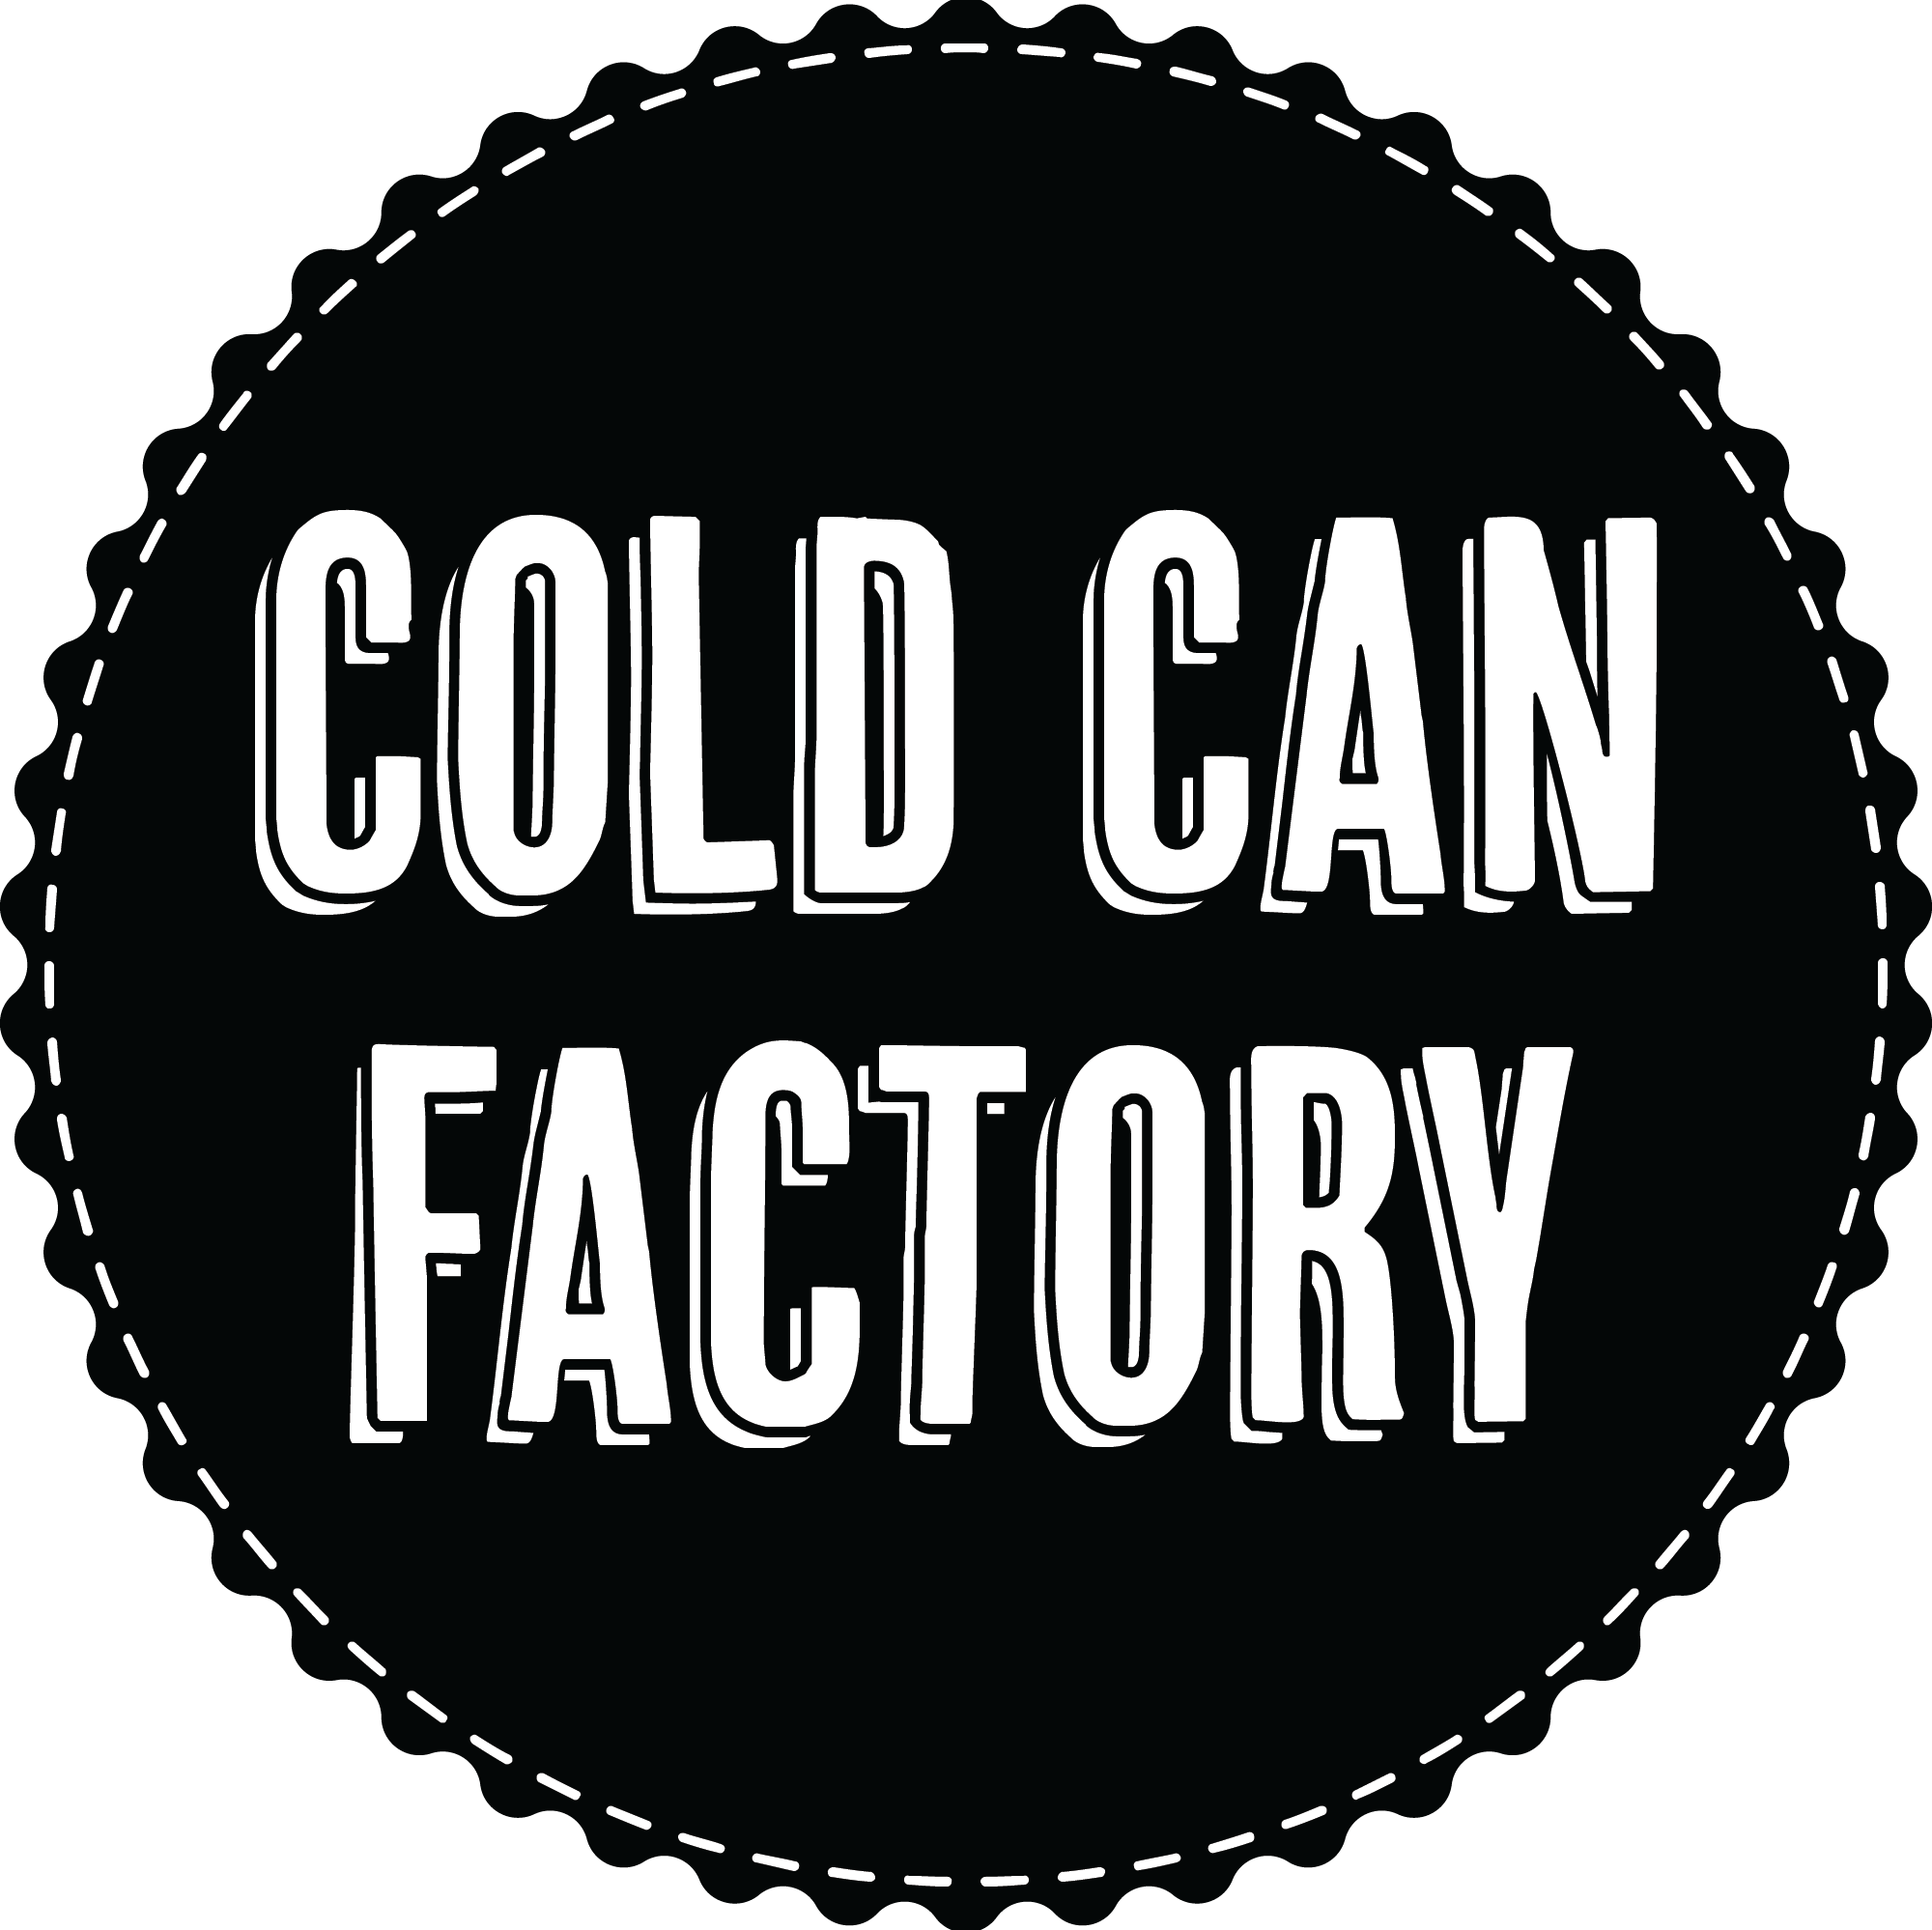 Cold Can Factory